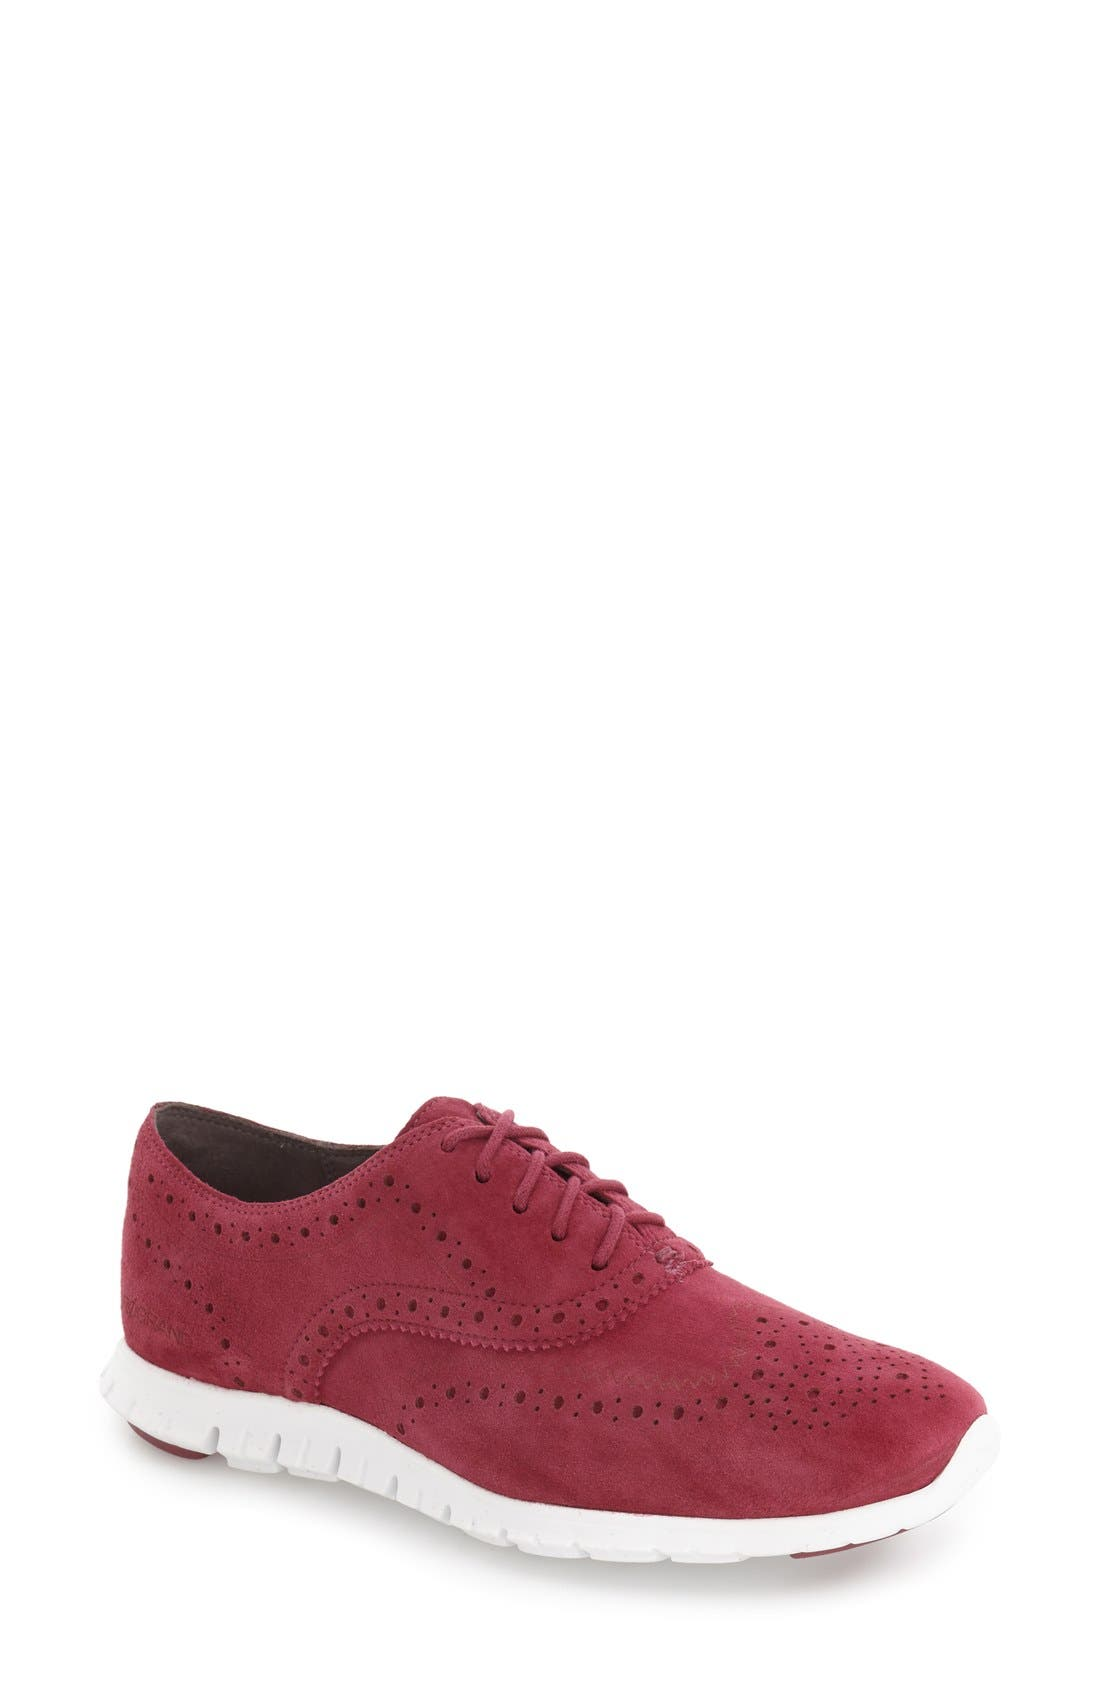 'ZeroGrand' Perforated Wingtip,                             Main thumbnail 28, color,